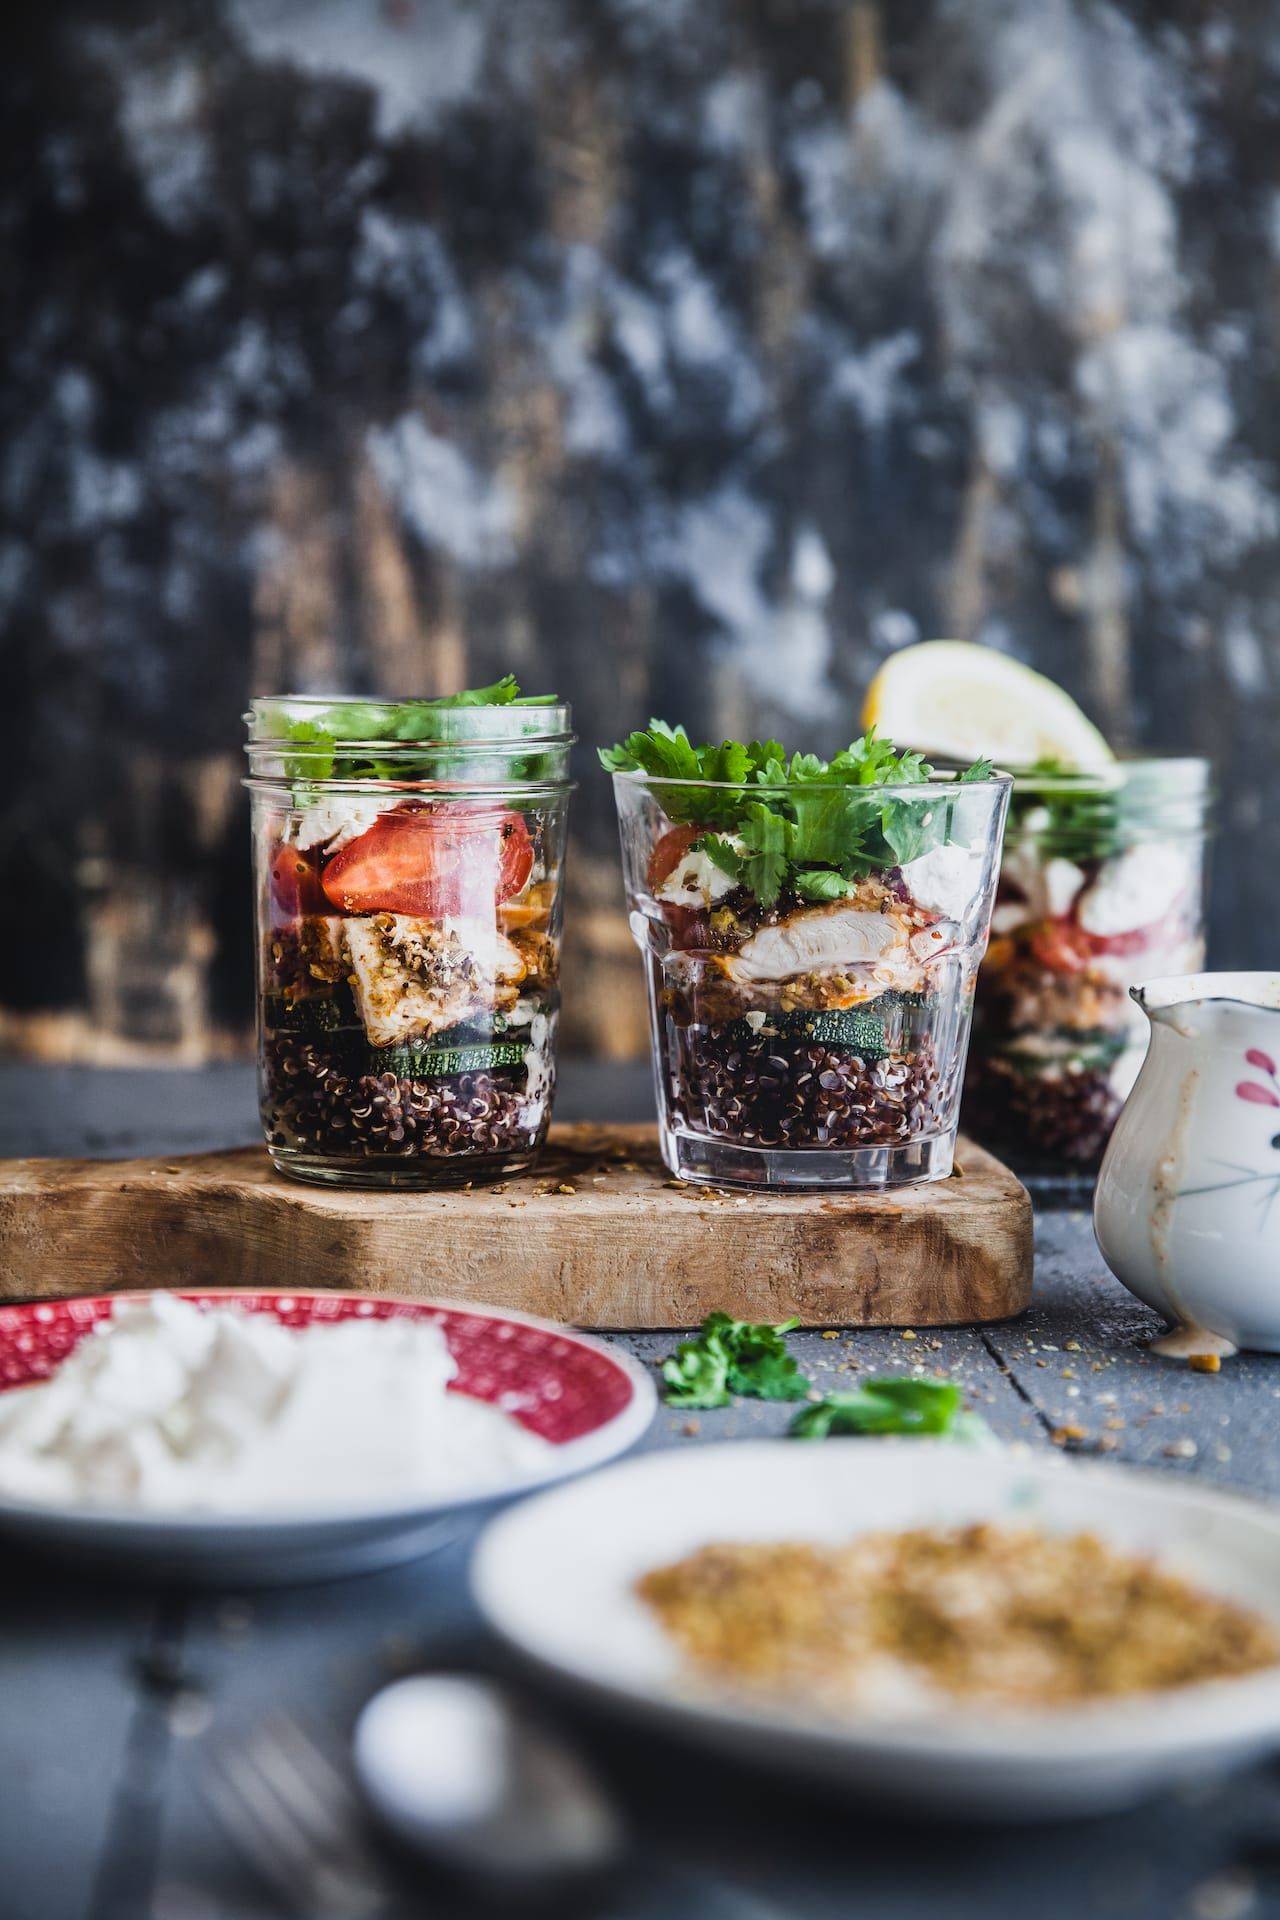 Chicken And Quinoa Mason Jar Salad | Playful Cooking #quinoa #mason #jar #salad #chicken #dukkah